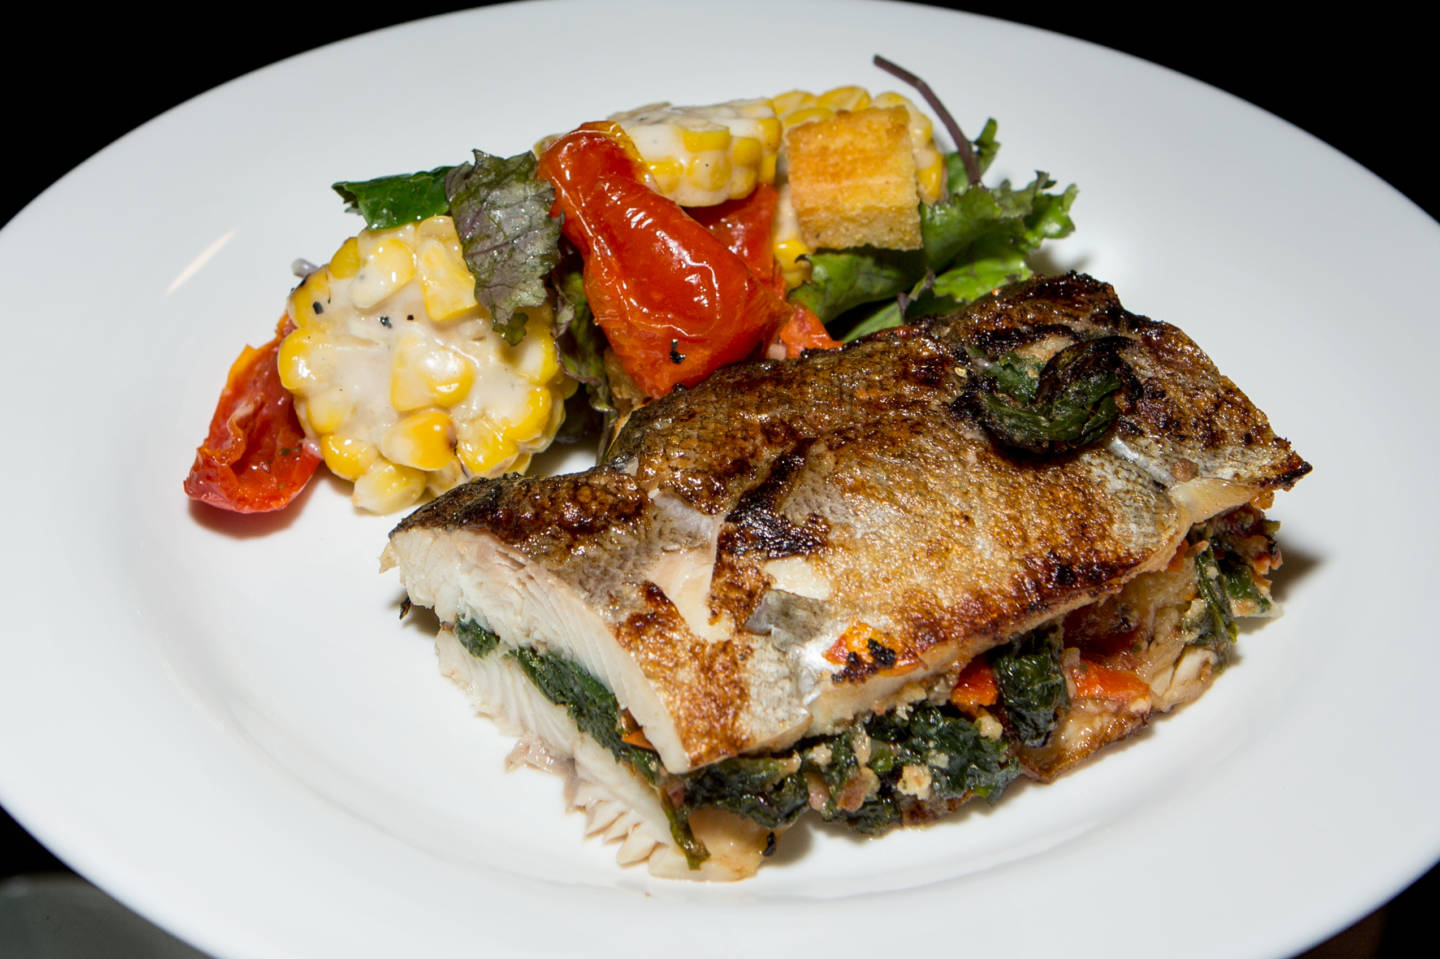 Pan Roast Rainbow Trout, served with cornbread and mustard greens stuffing and hazelnut brown butter, a seafood offering in the Western Range.  Ariel Zambelich/NPR